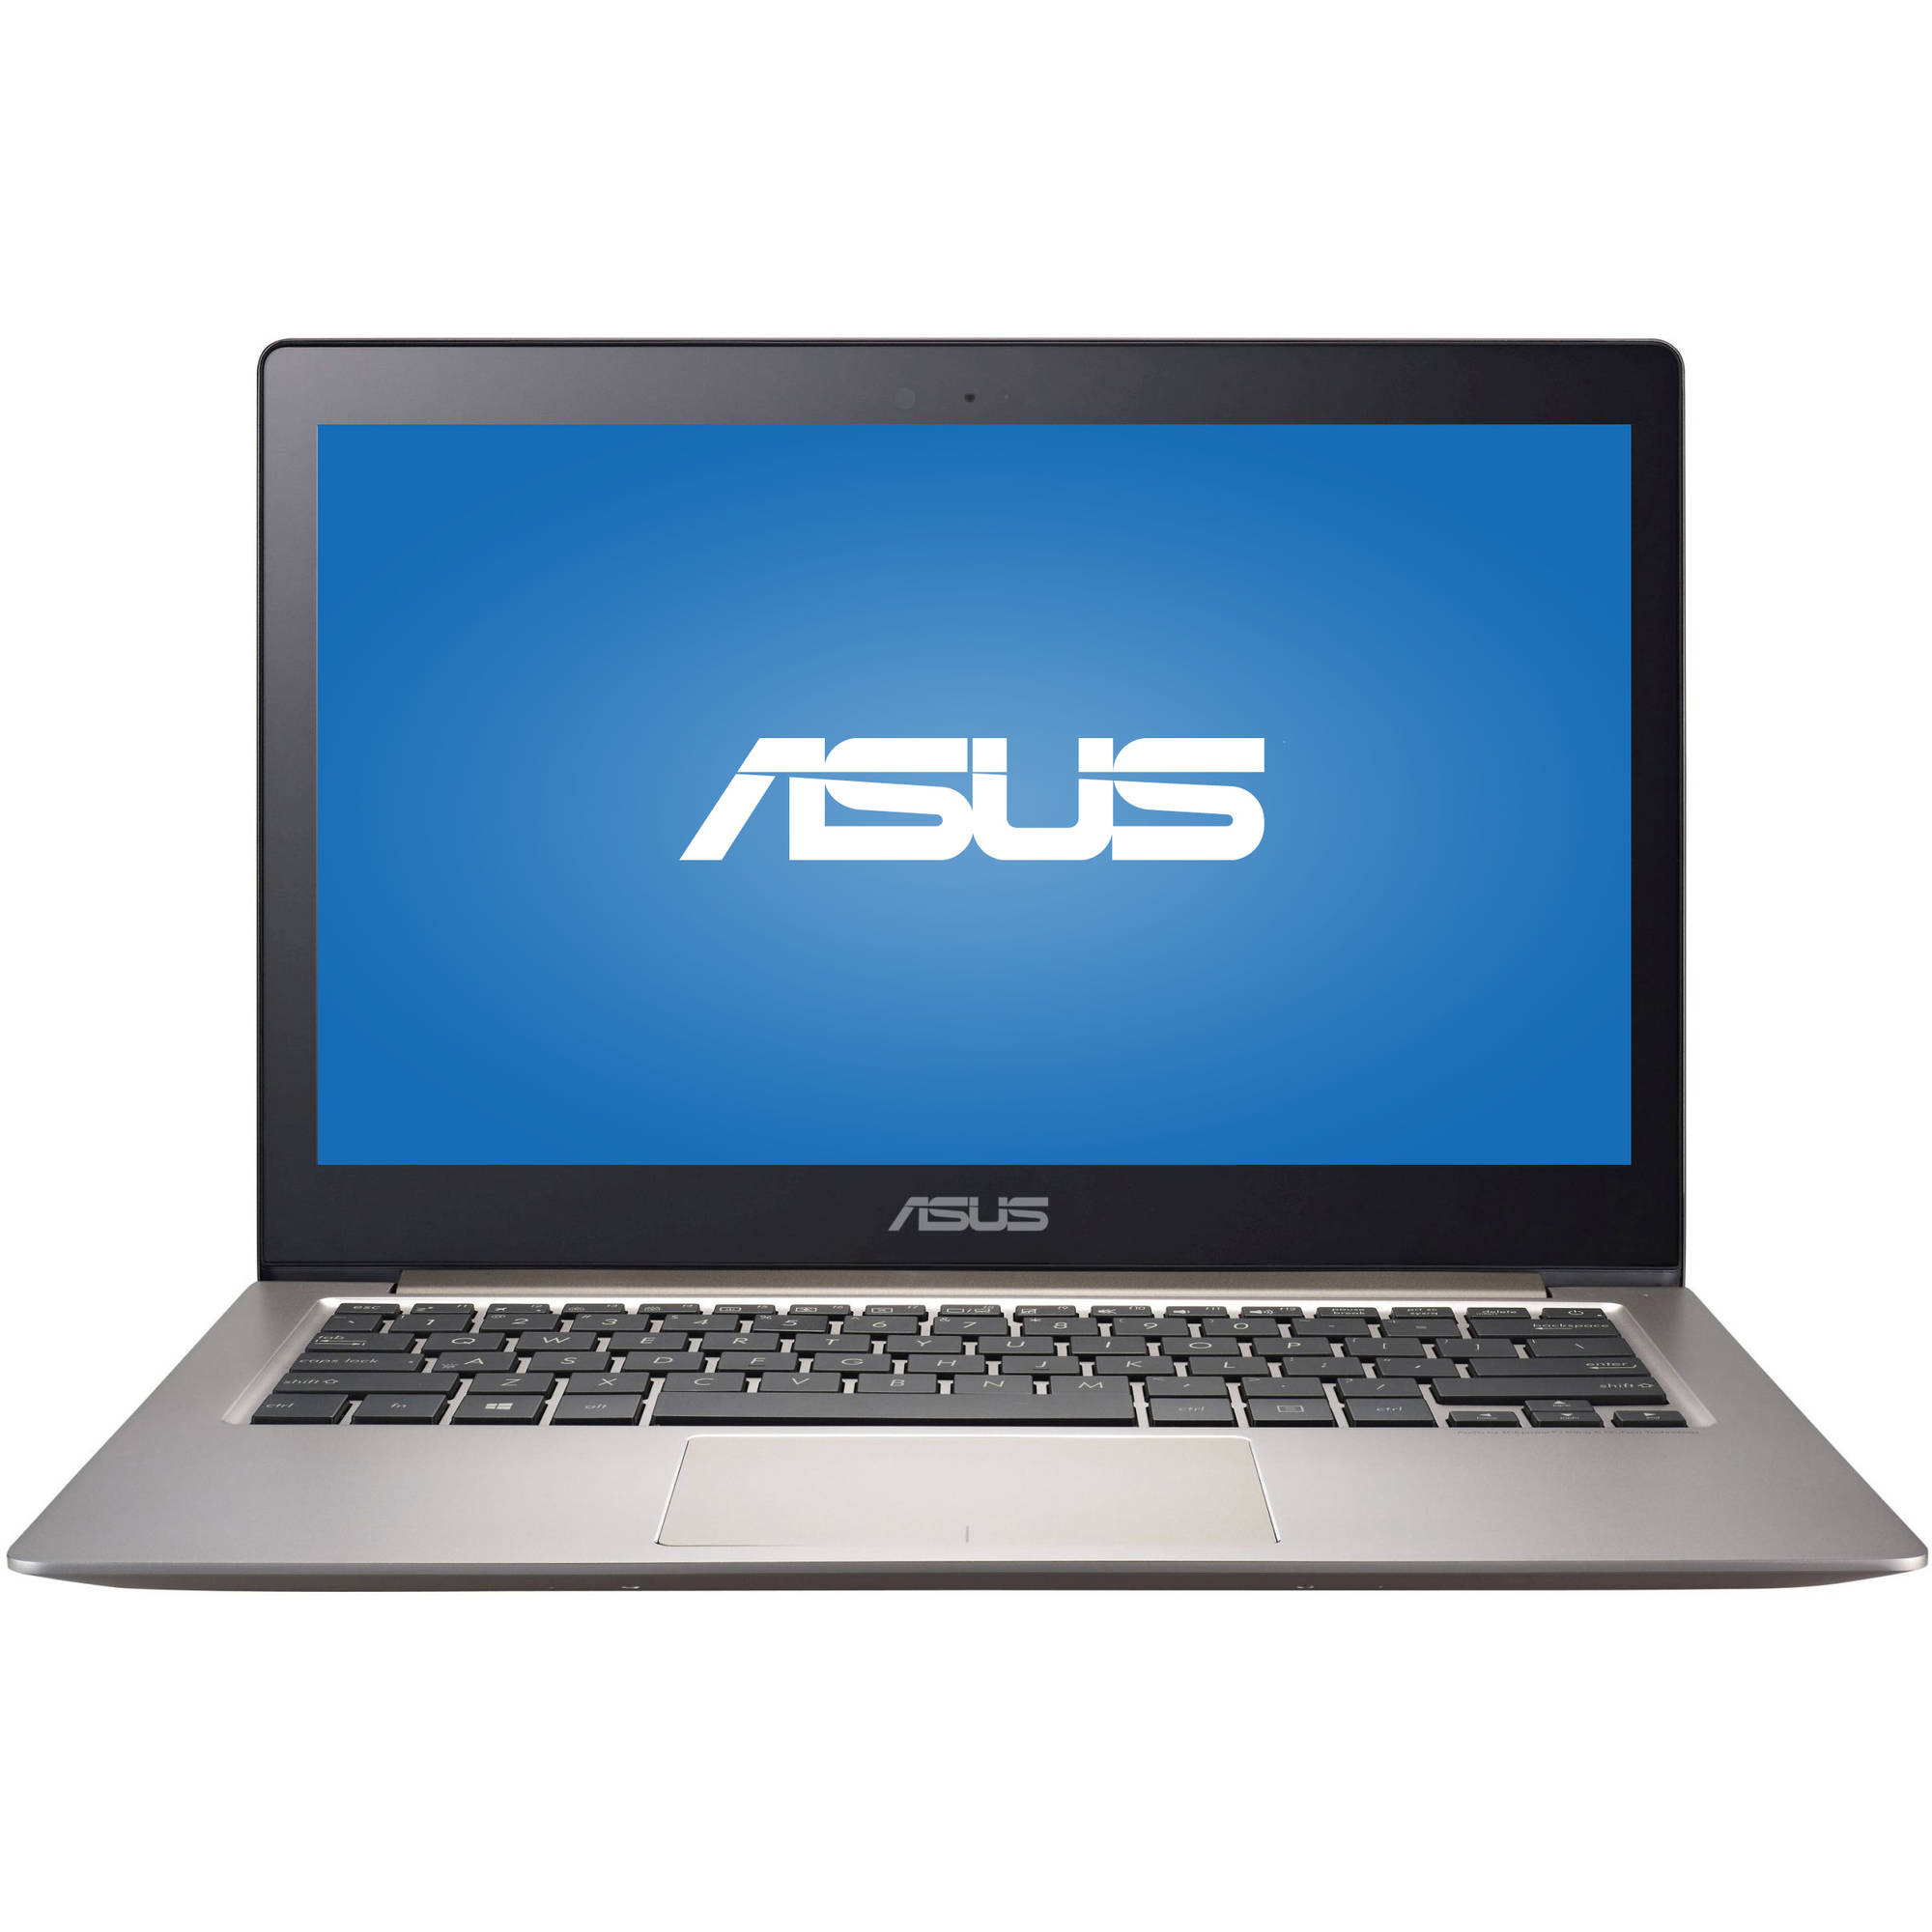 "ASUS Smokey Brown 13.3"" UX303UB-DH74T Zenbook Laptop PC with Intel Core i7-6500U Processor, 12GB Memory, 512GB SSD and Windows 10"